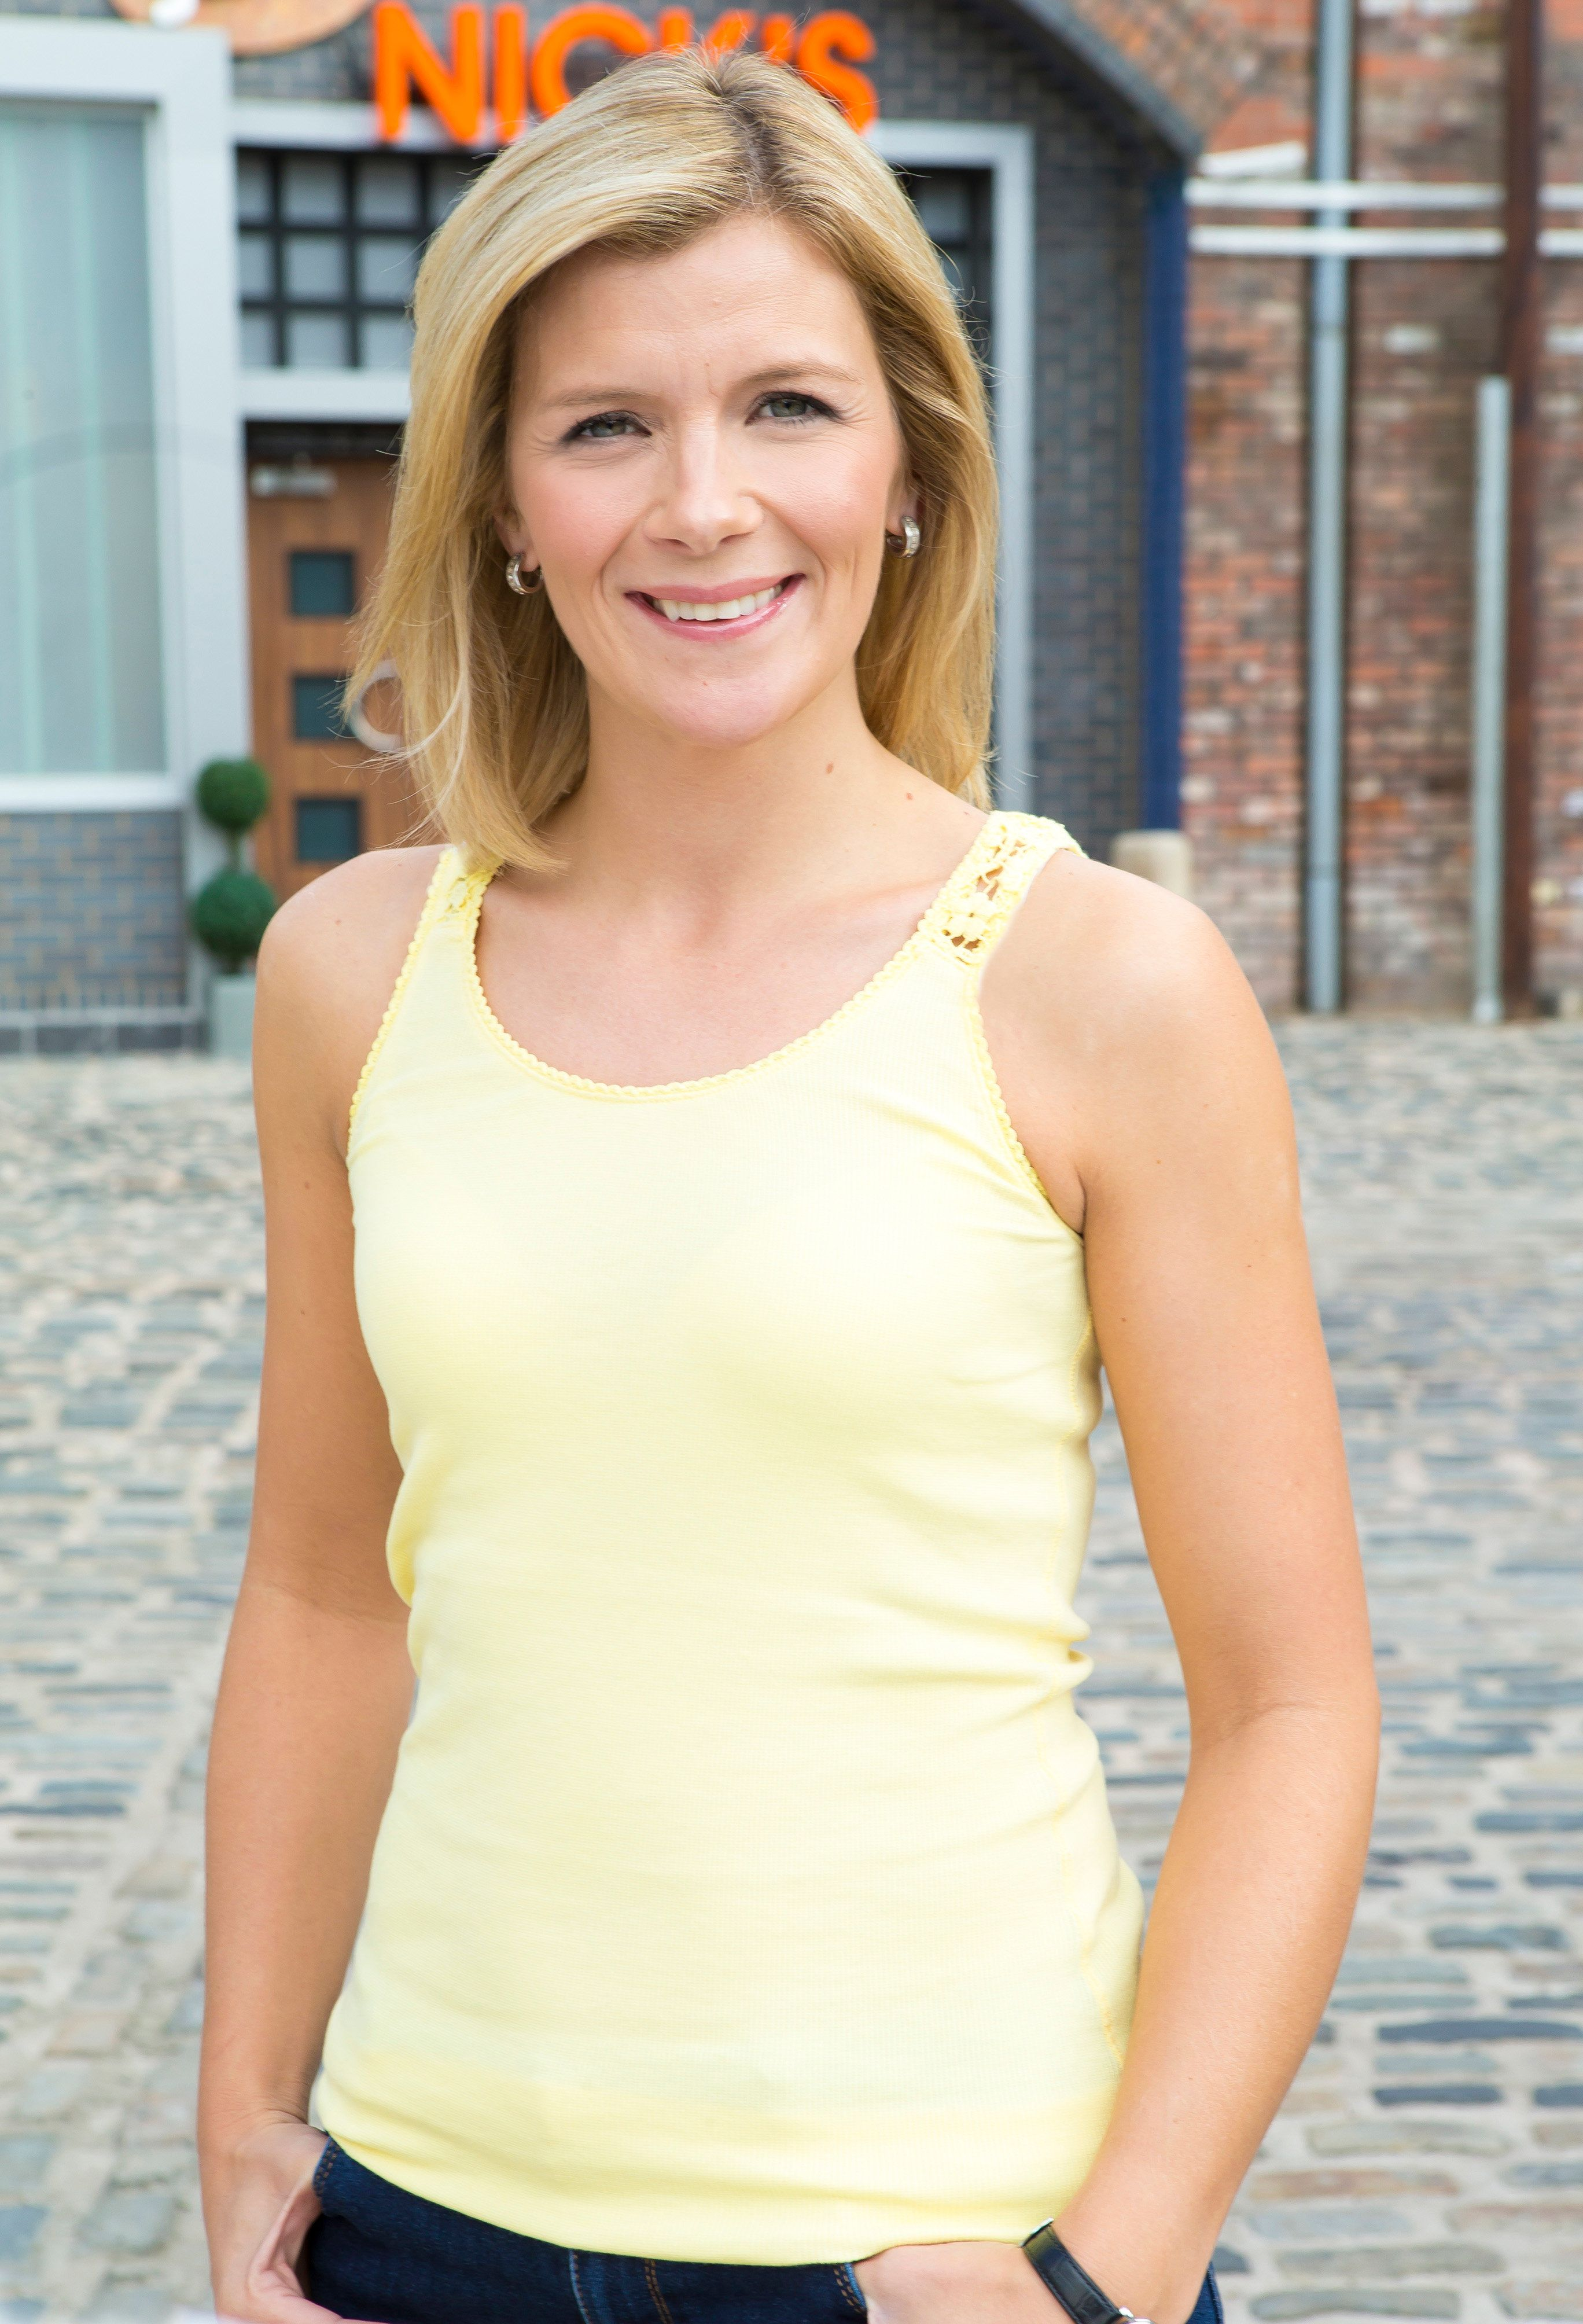 'Coronation Street' Spoilers: Leanne Battersby To Fall Pregnant With Weatherfield Resident's